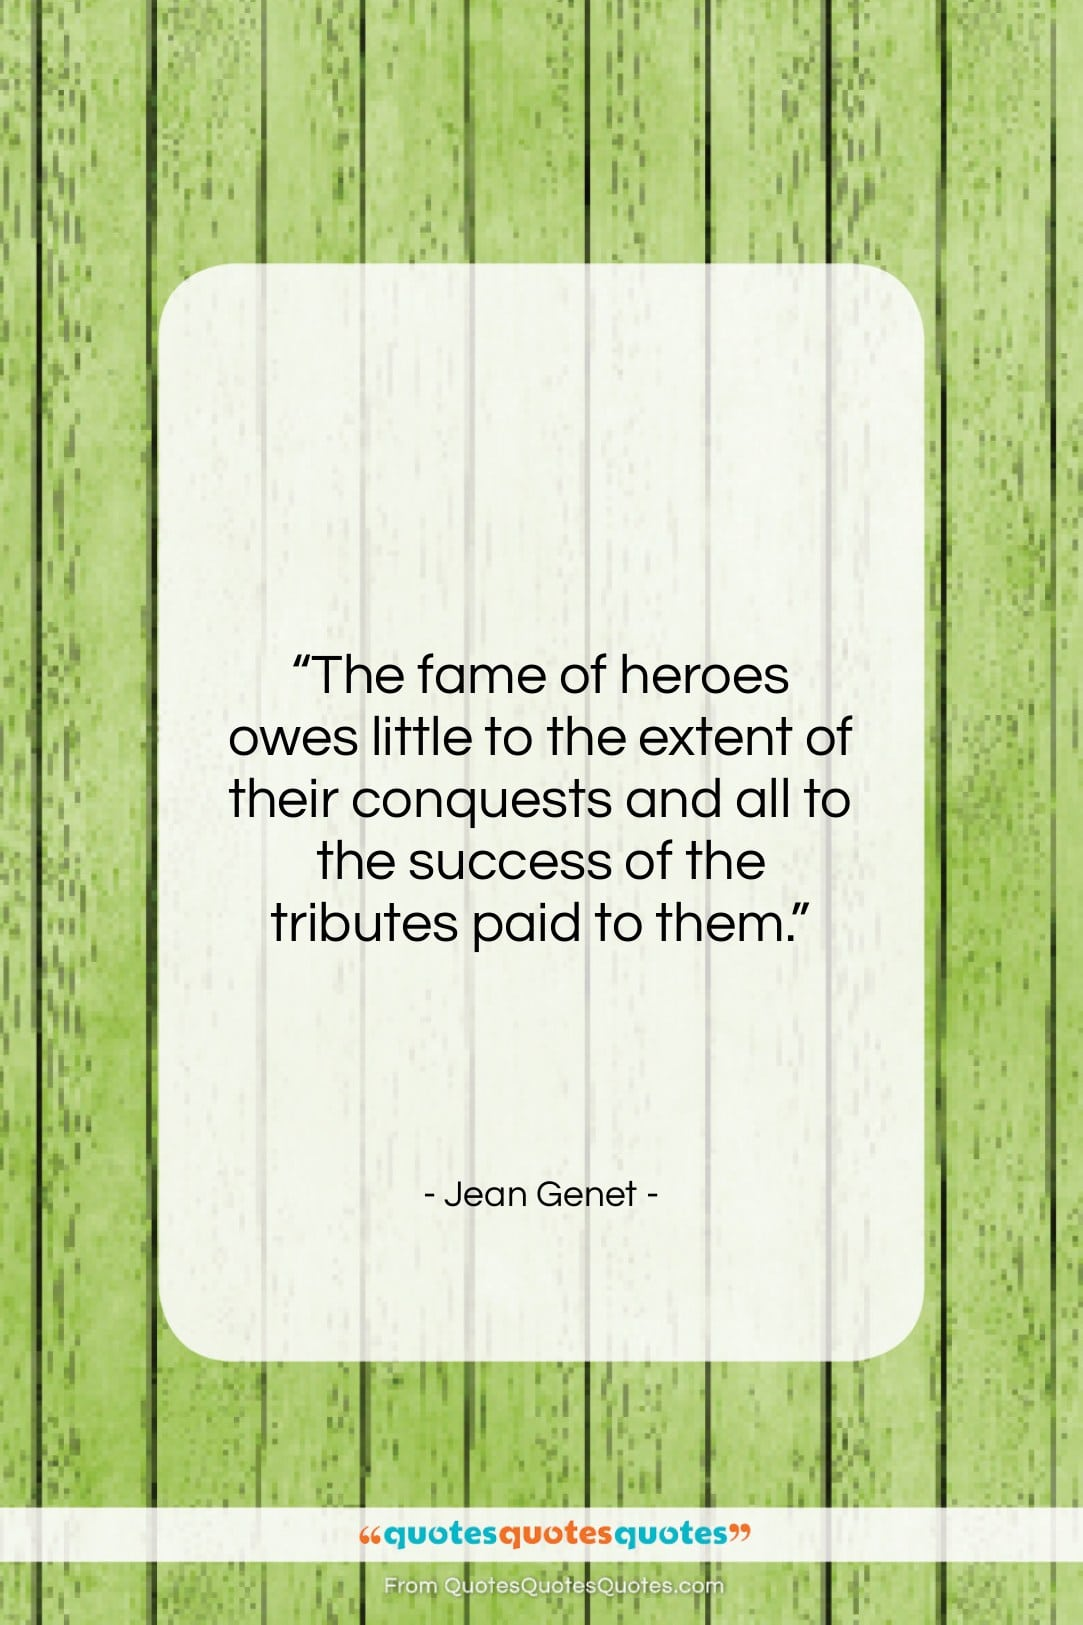 """Jean Genet quote: """"The fame of heroes owes little to…""""- at QuotesQuotesQuotes.com"""